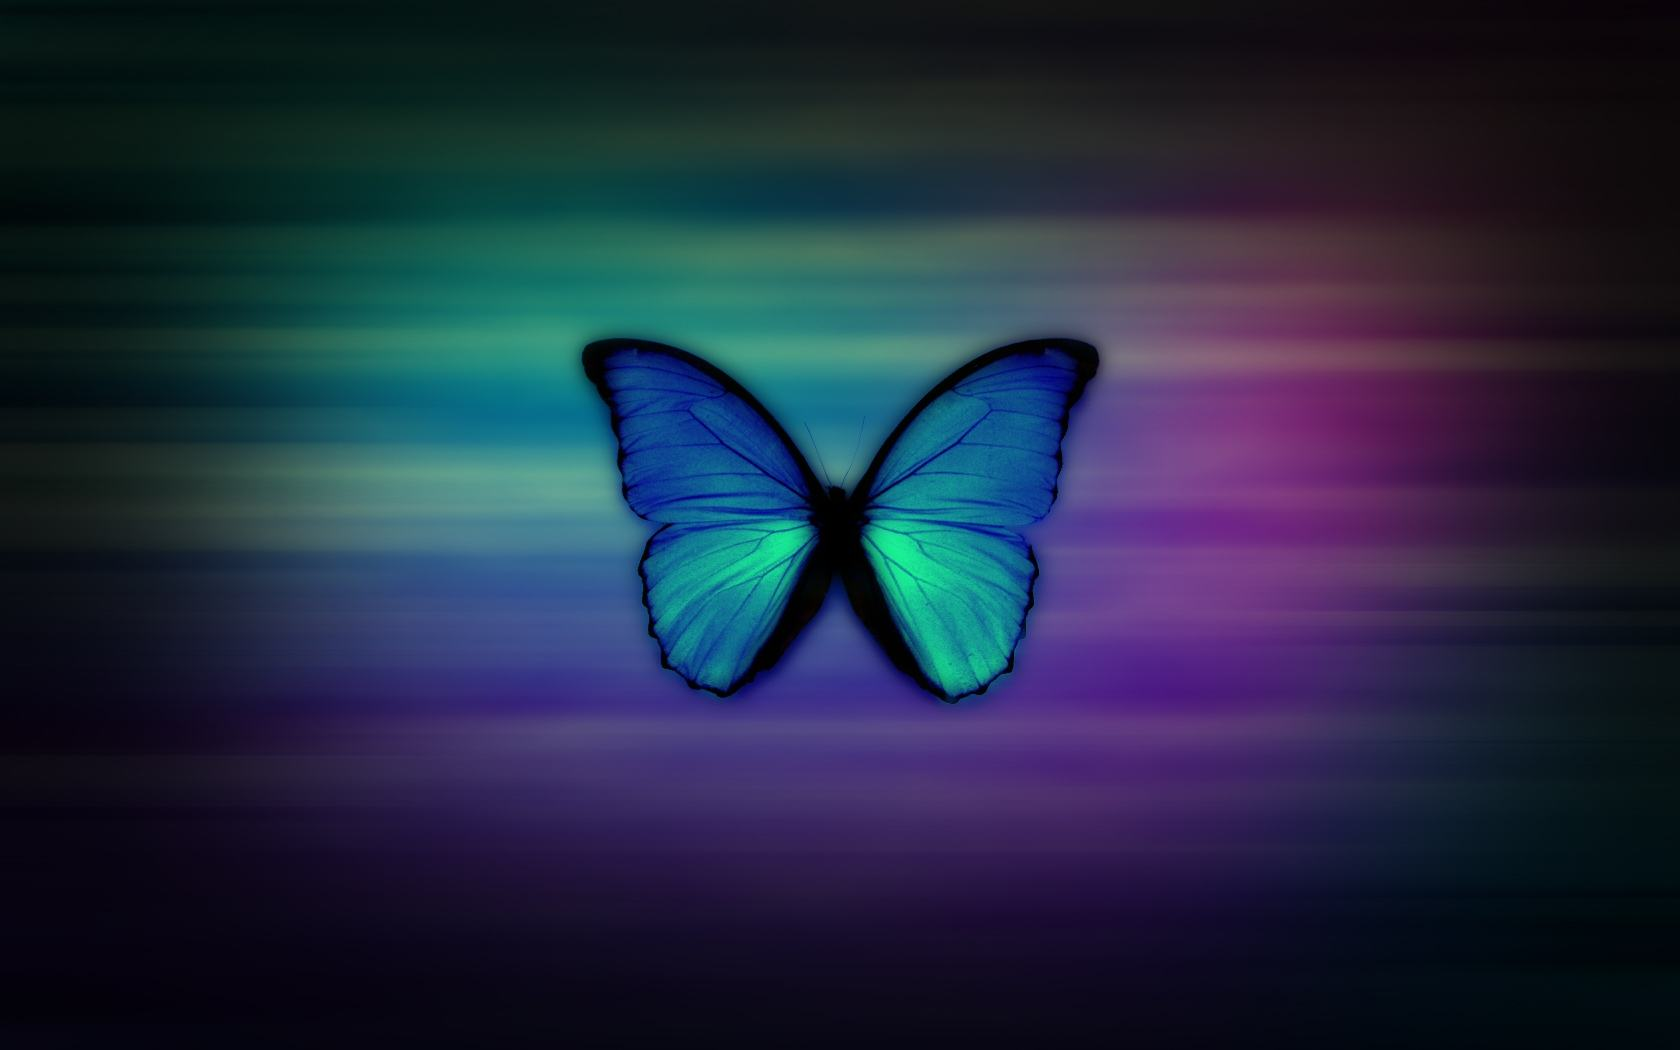 girly-wallpapers-cool-butterfly-neon-effect